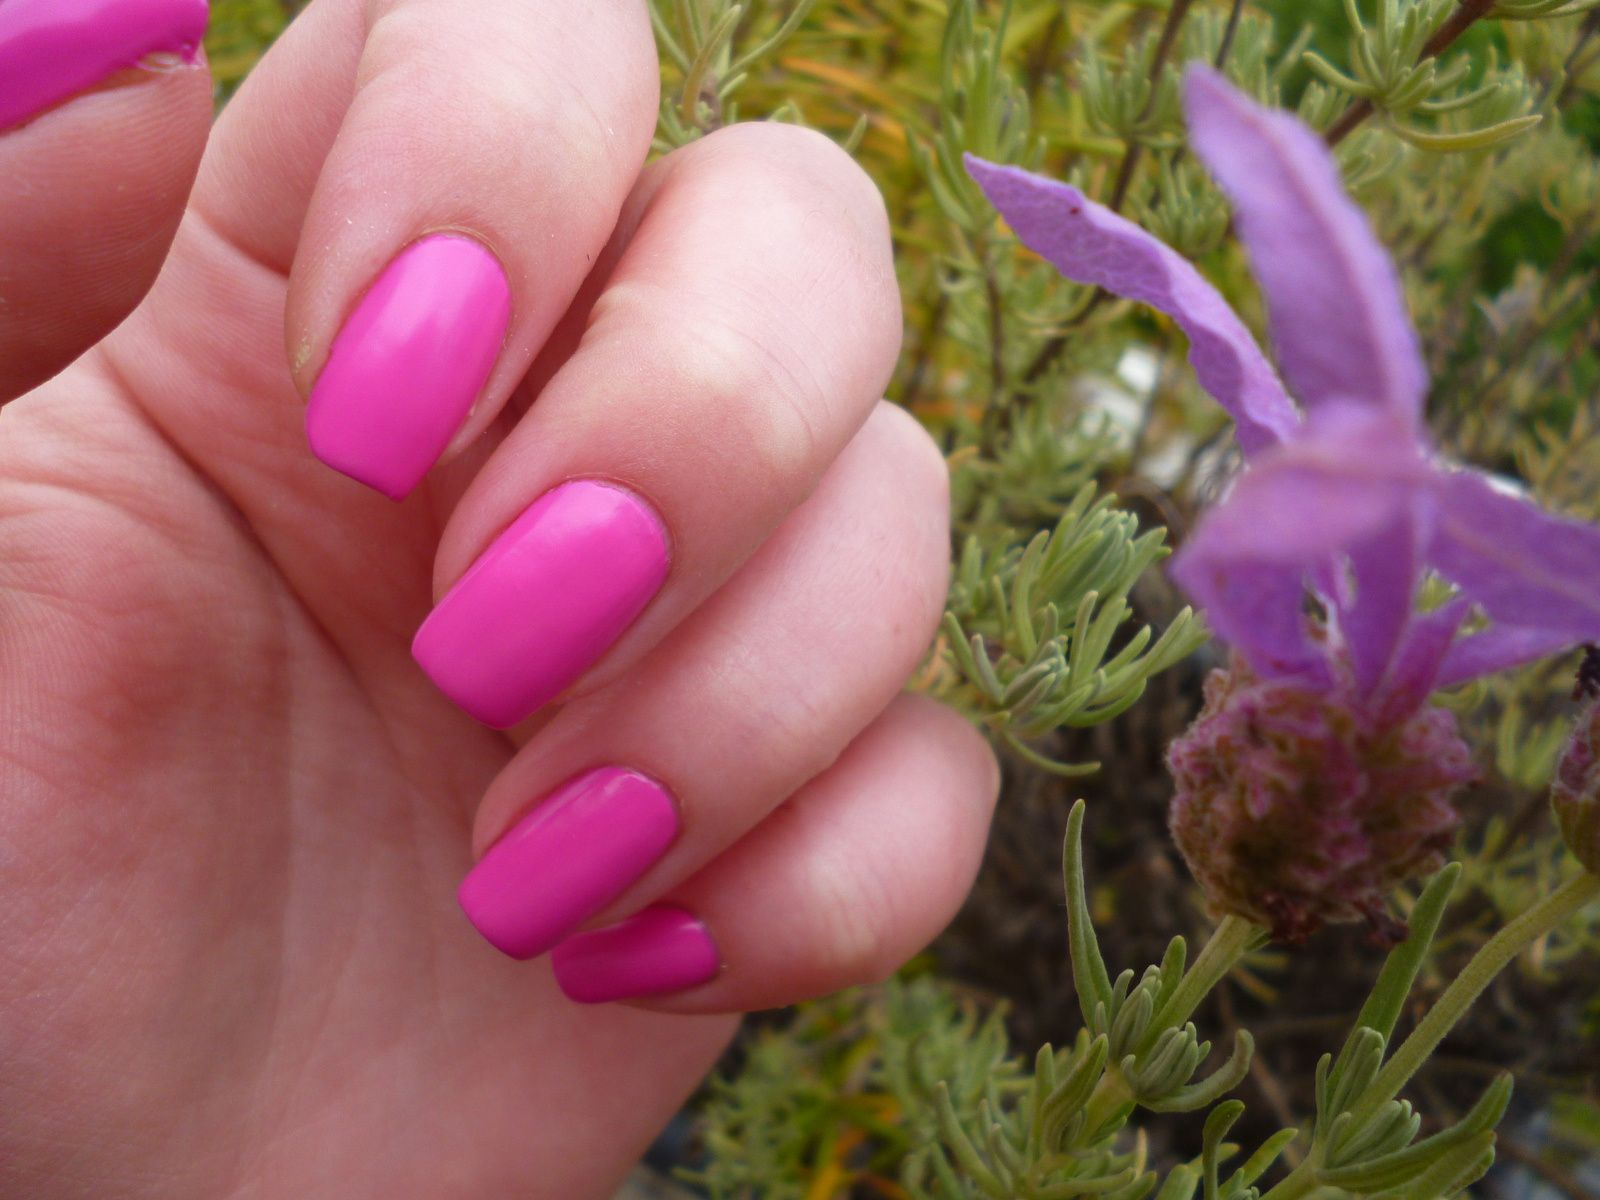 MY EXTREM VERNIS JUNGLE PINK - Beautynails